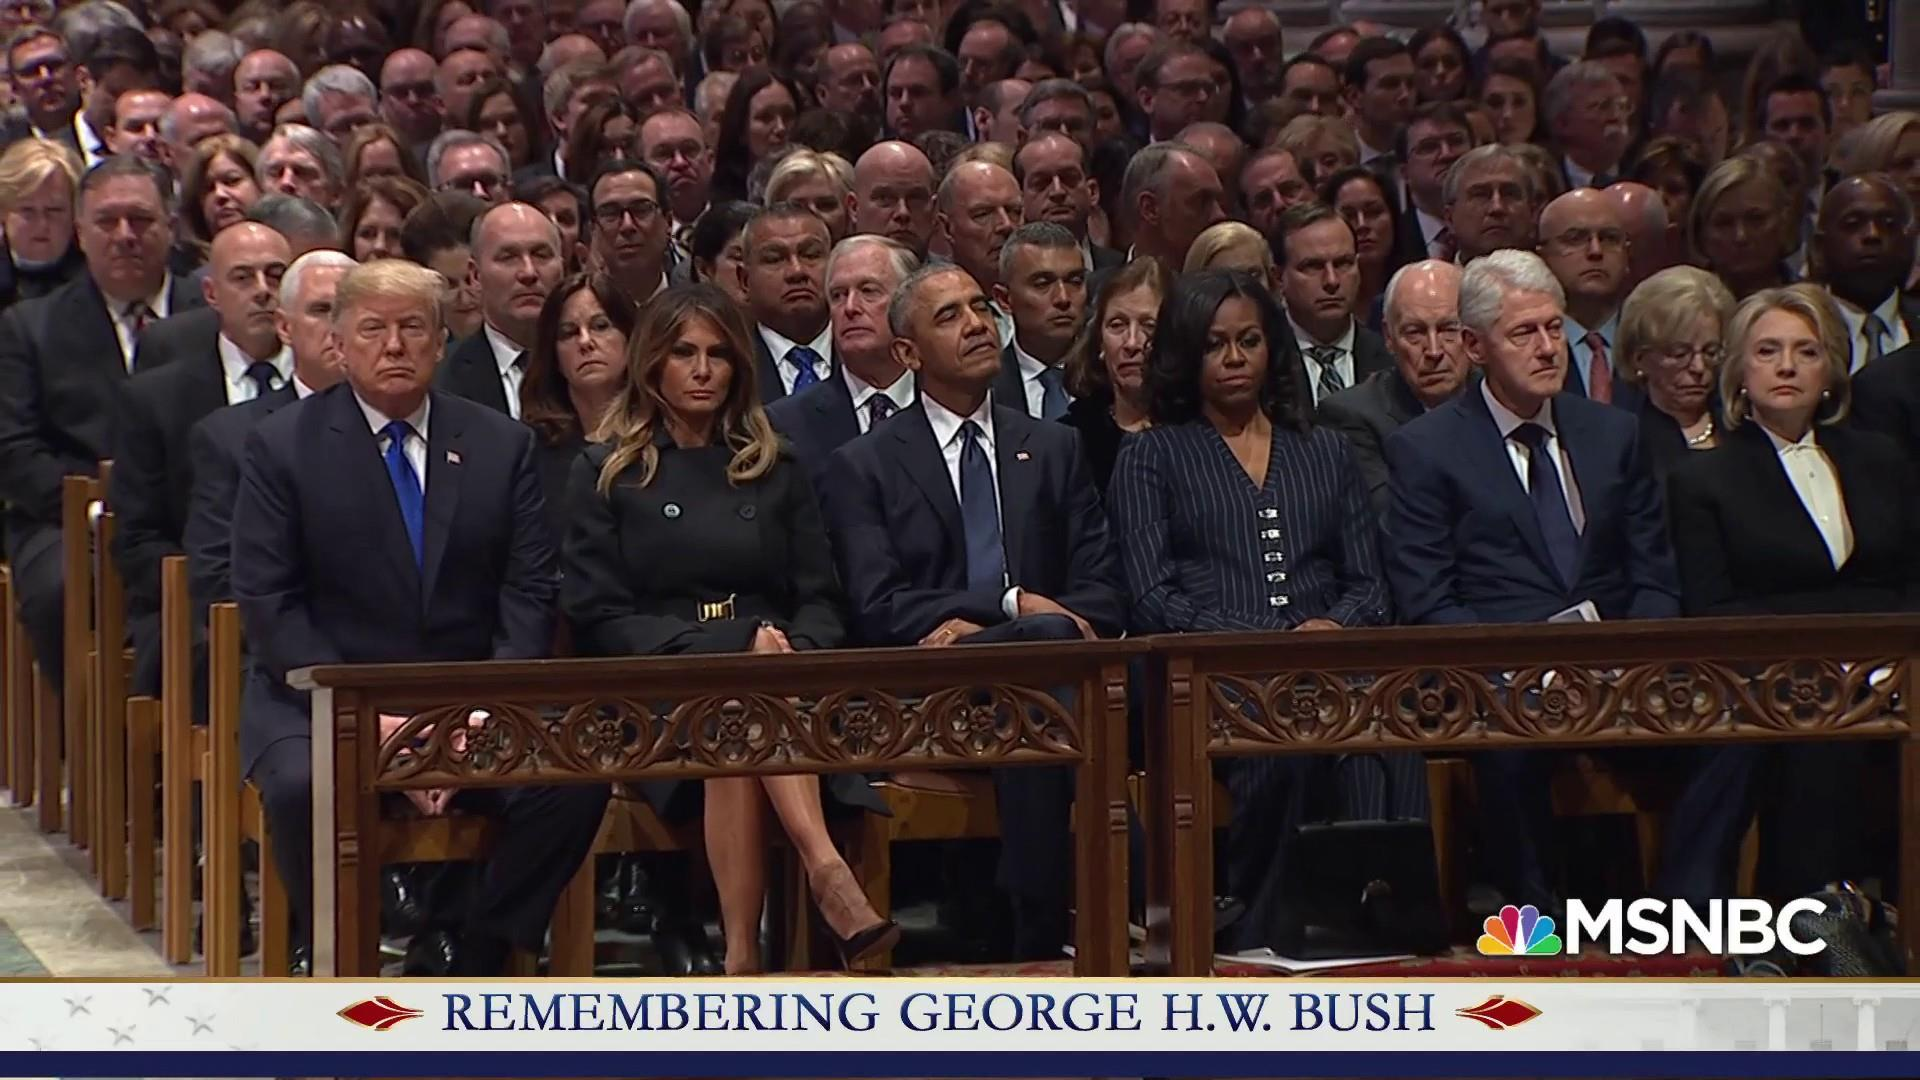 Former presidents sit together in National Cathedral to honor H.W. Bush